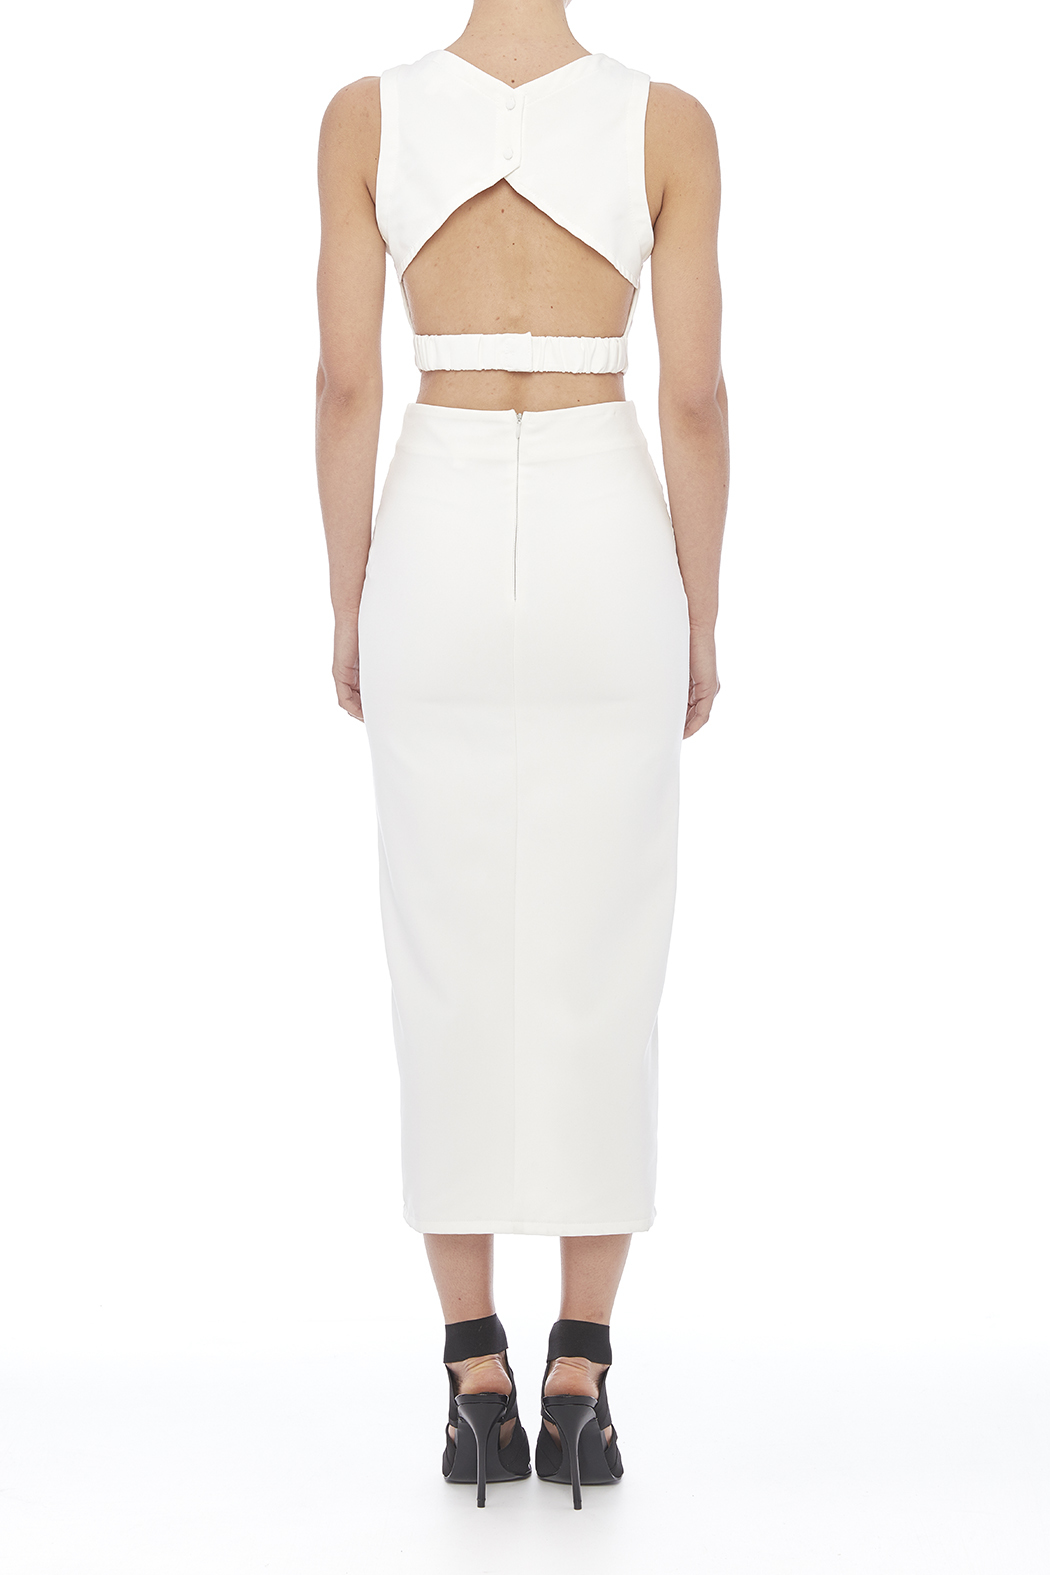 Latiste Two Piece Skirt Set From Manhattan By Dor LDor